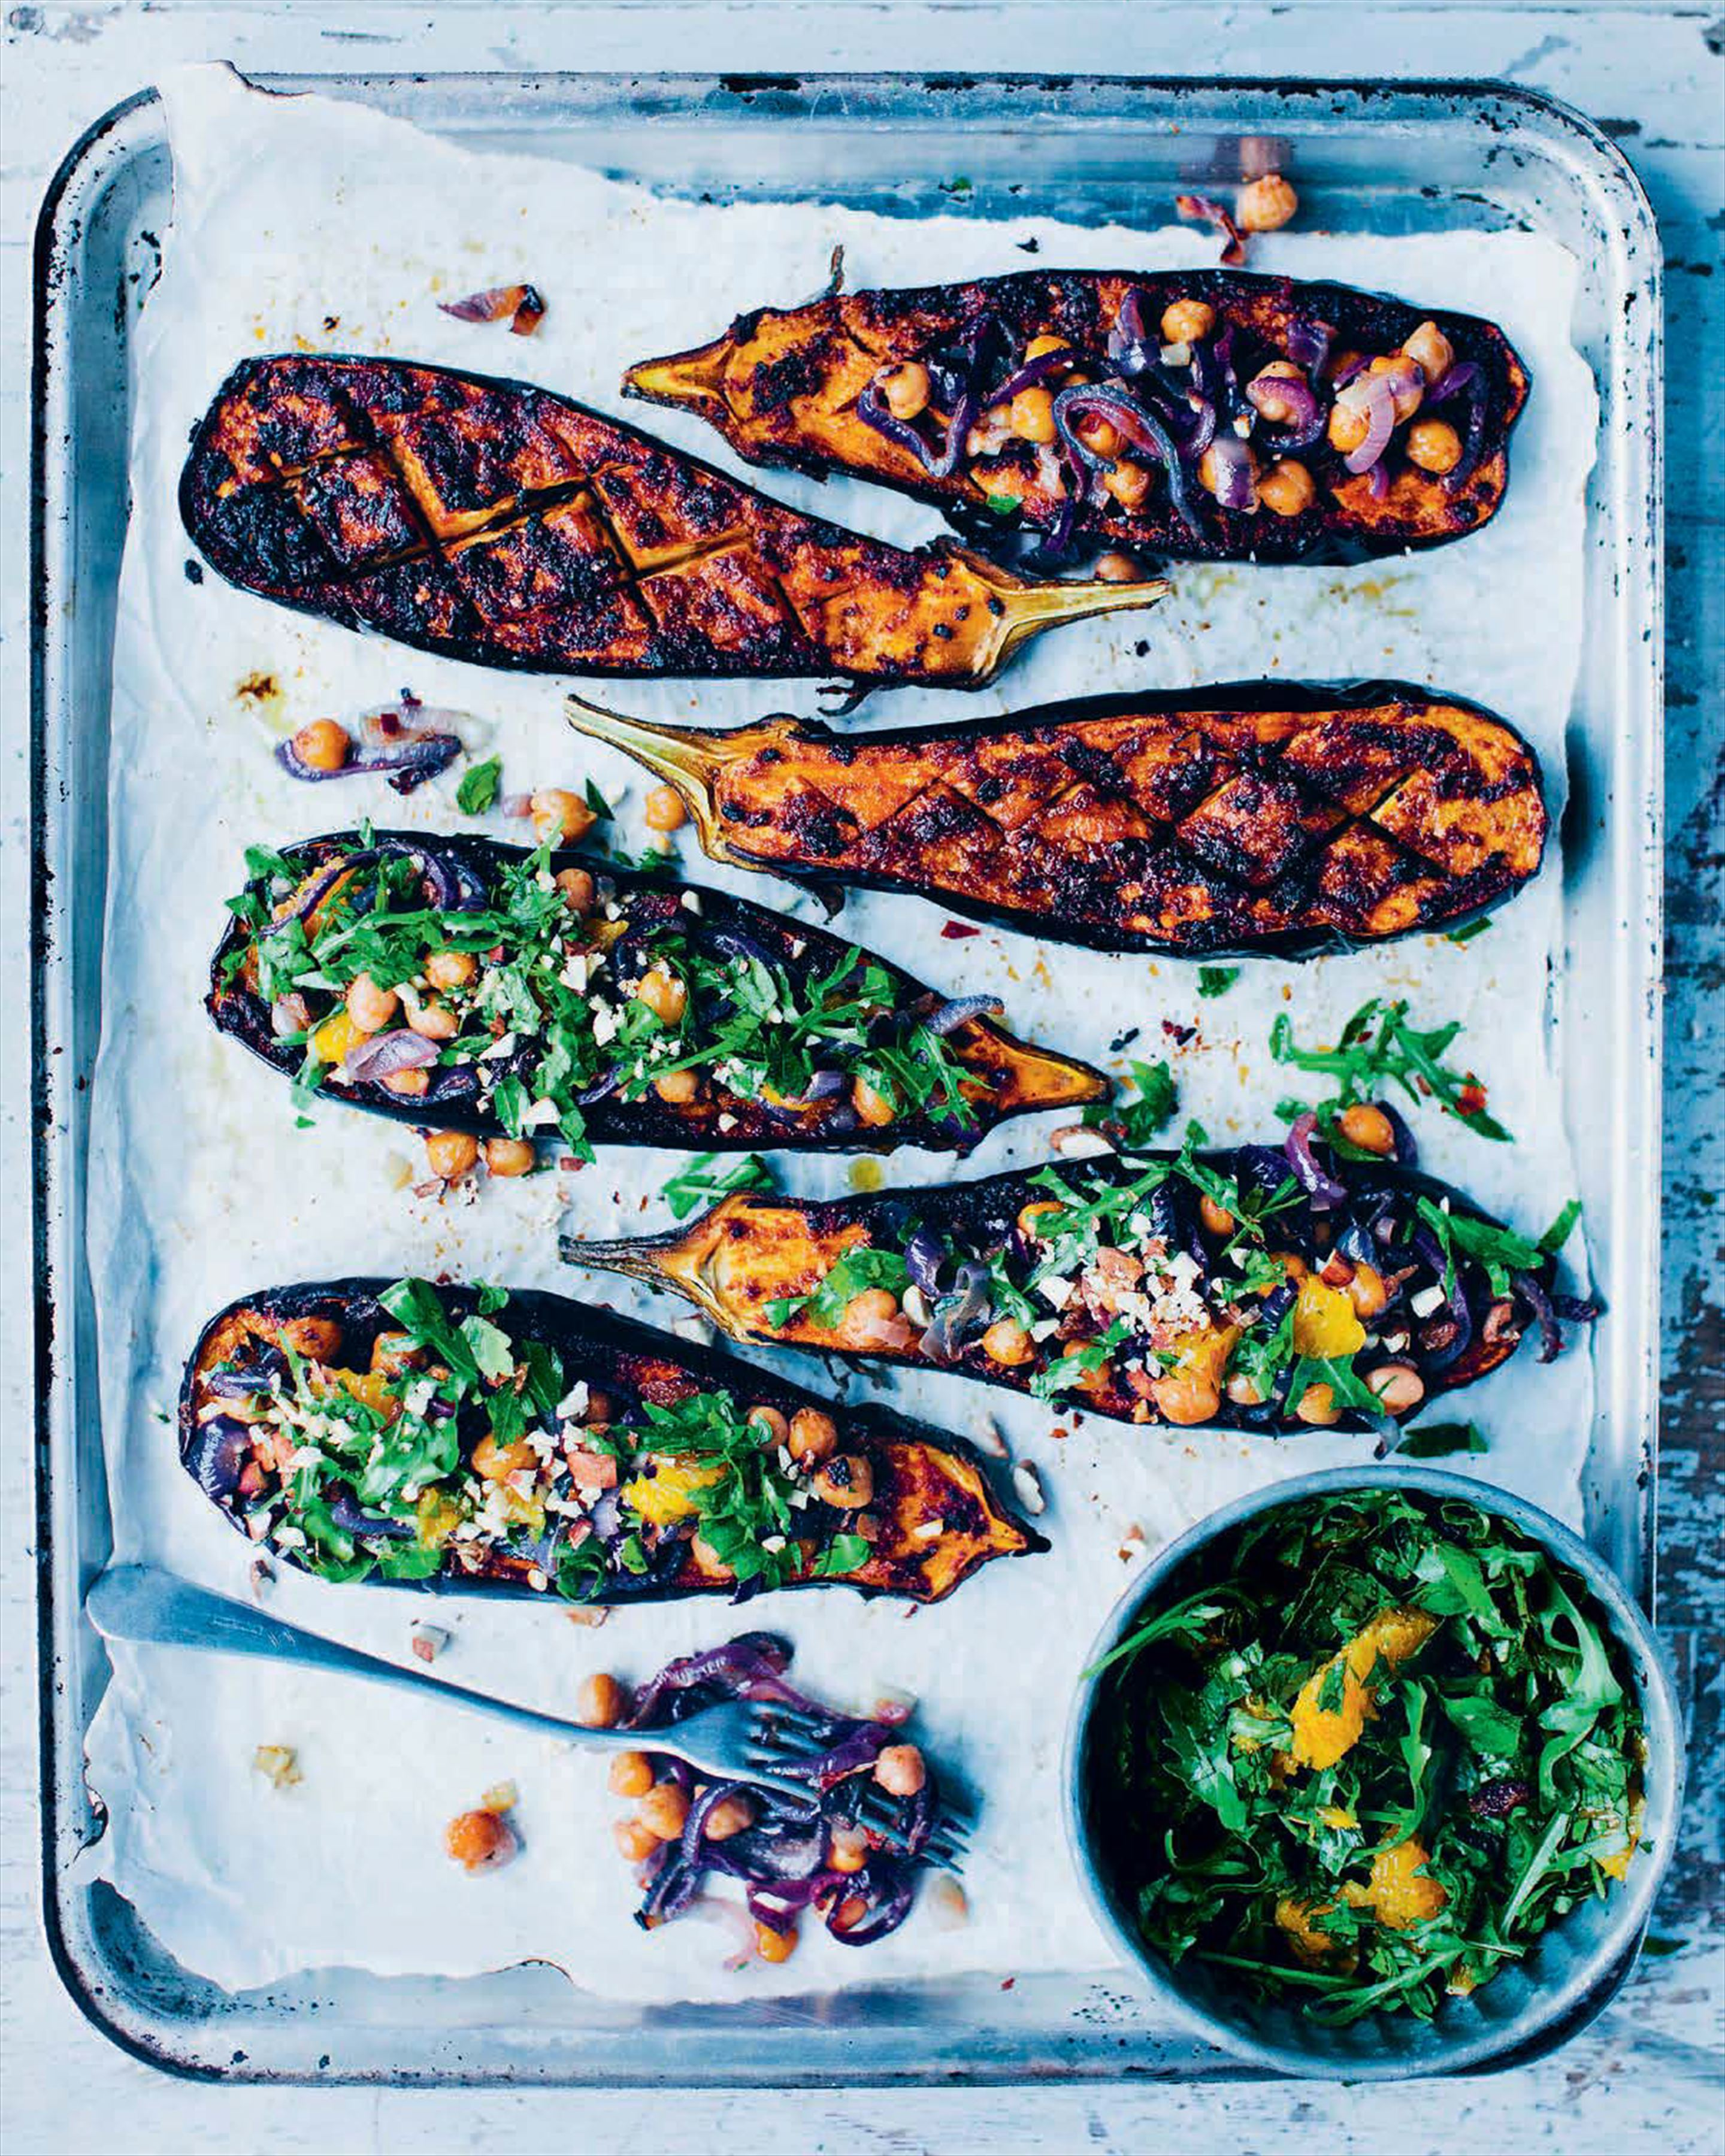 Chermoula baked aubergine with spiced chickpeas